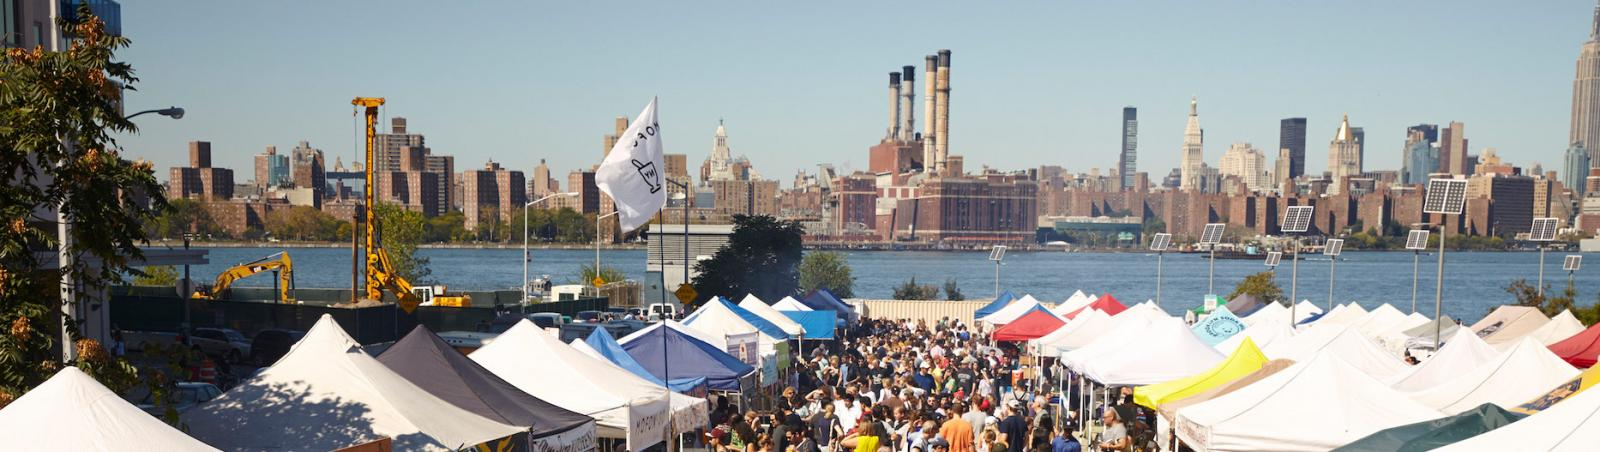 Smorgasburg Food Market in Williamsburg